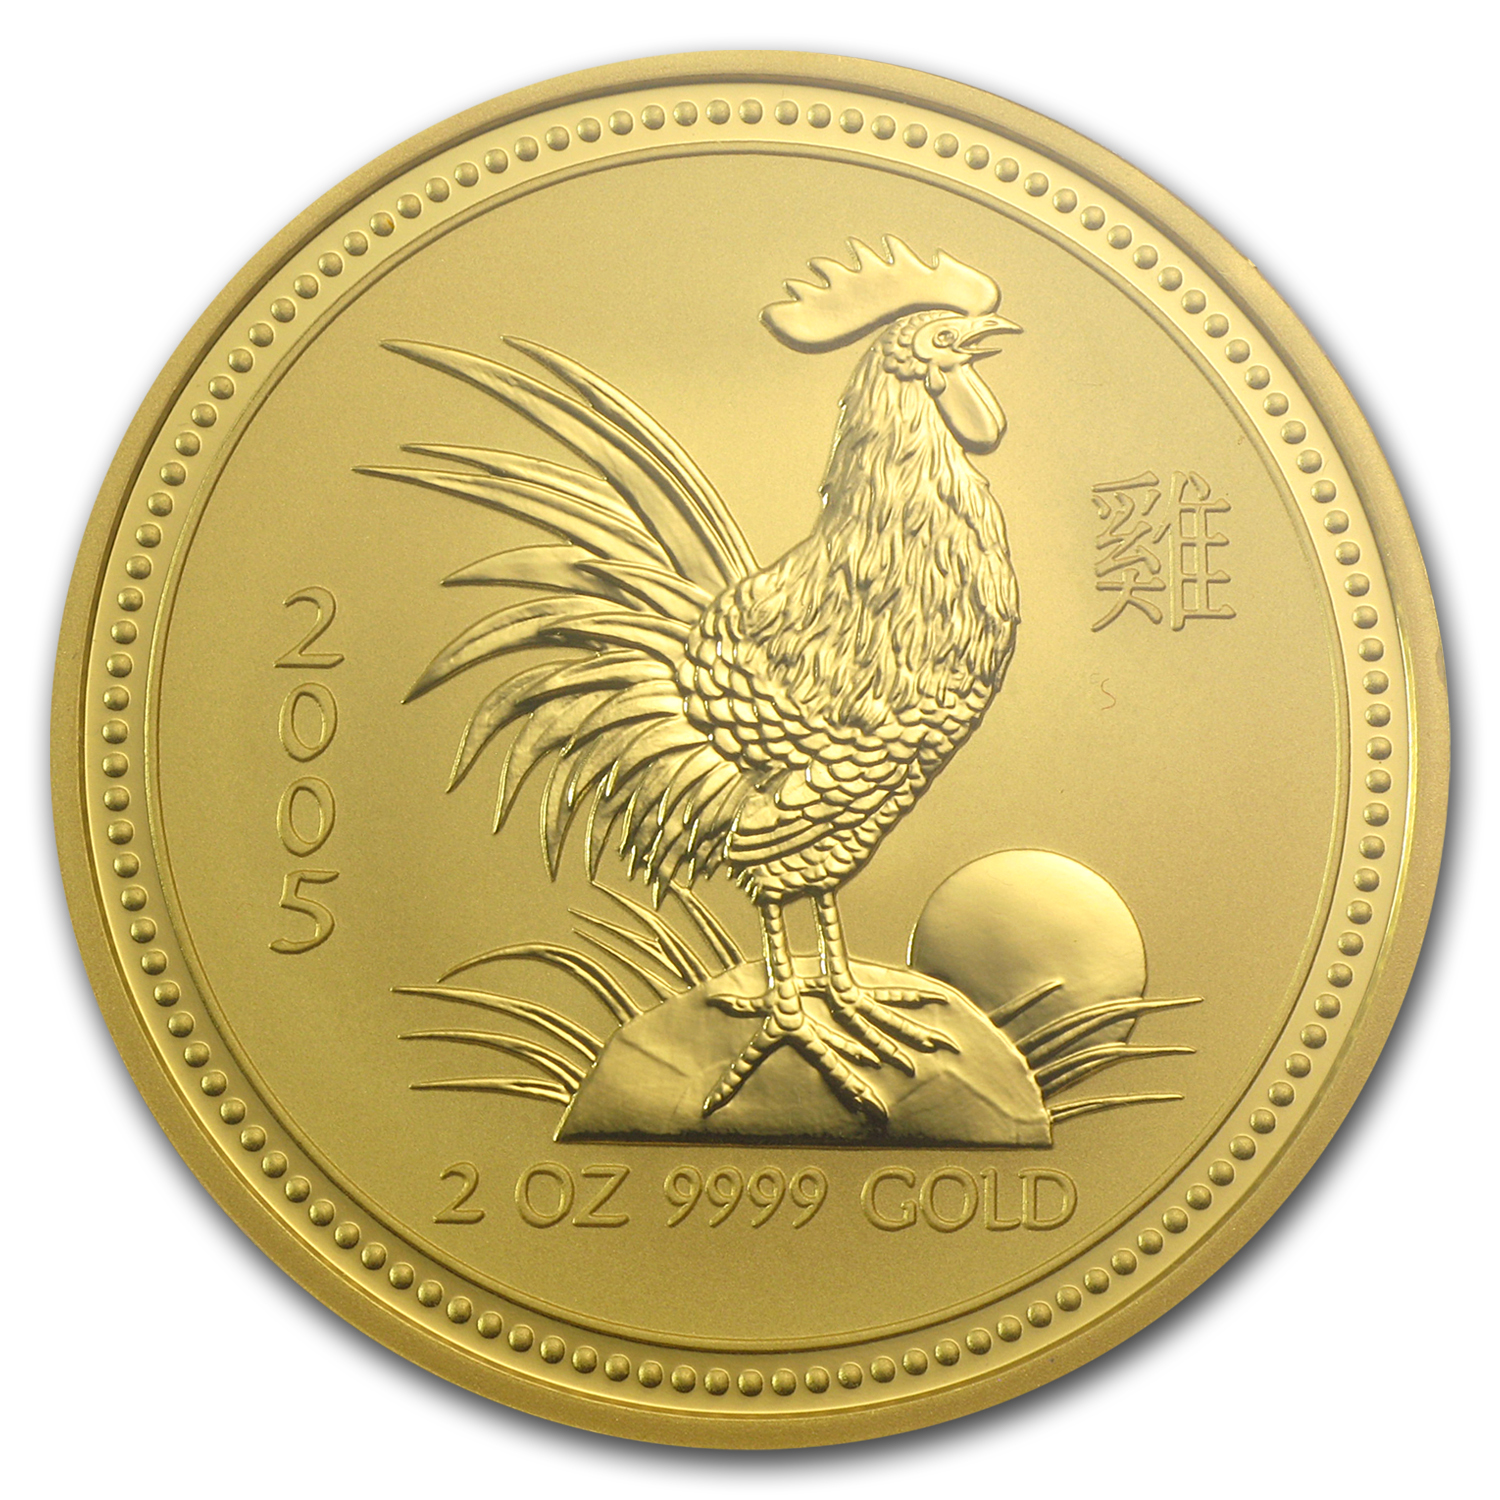 2005 2 oz Gold Year of the Rooster Lunar Coin (SI) PCGS MS-70